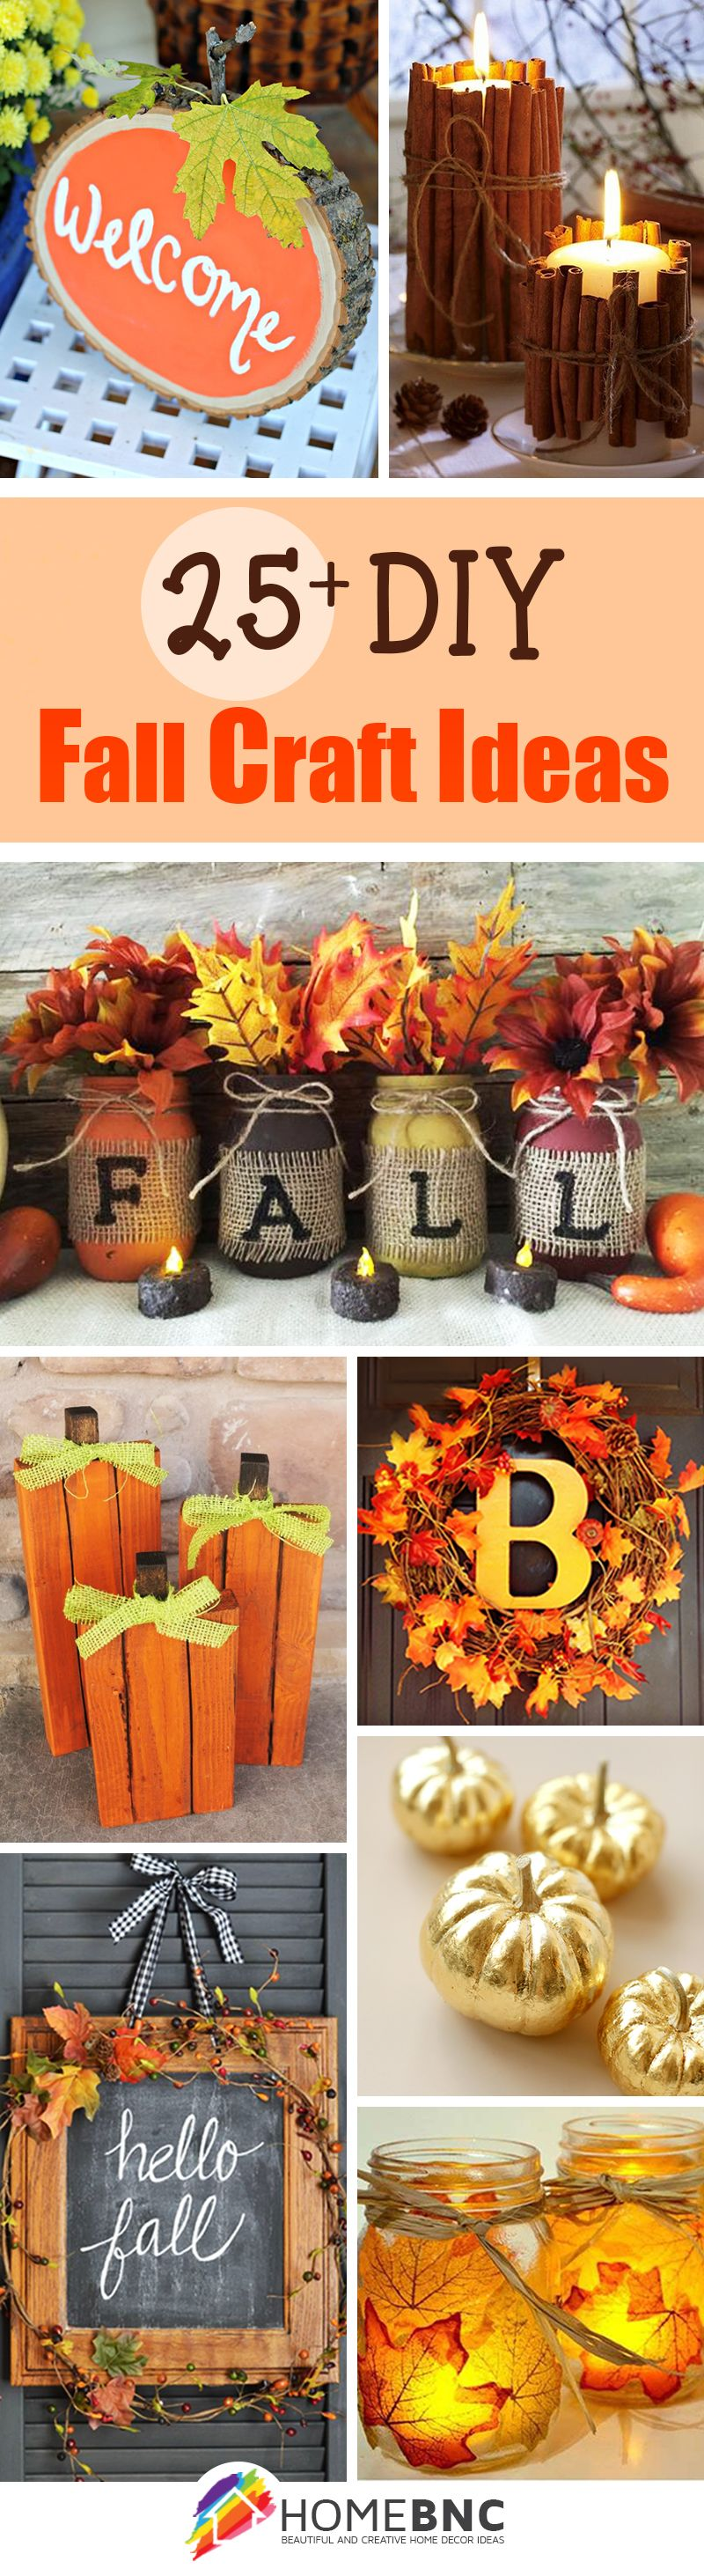 Fall decorating ideas on pinterest - 28 Best Diy Fall Craft Ideas And Decorations For 2016